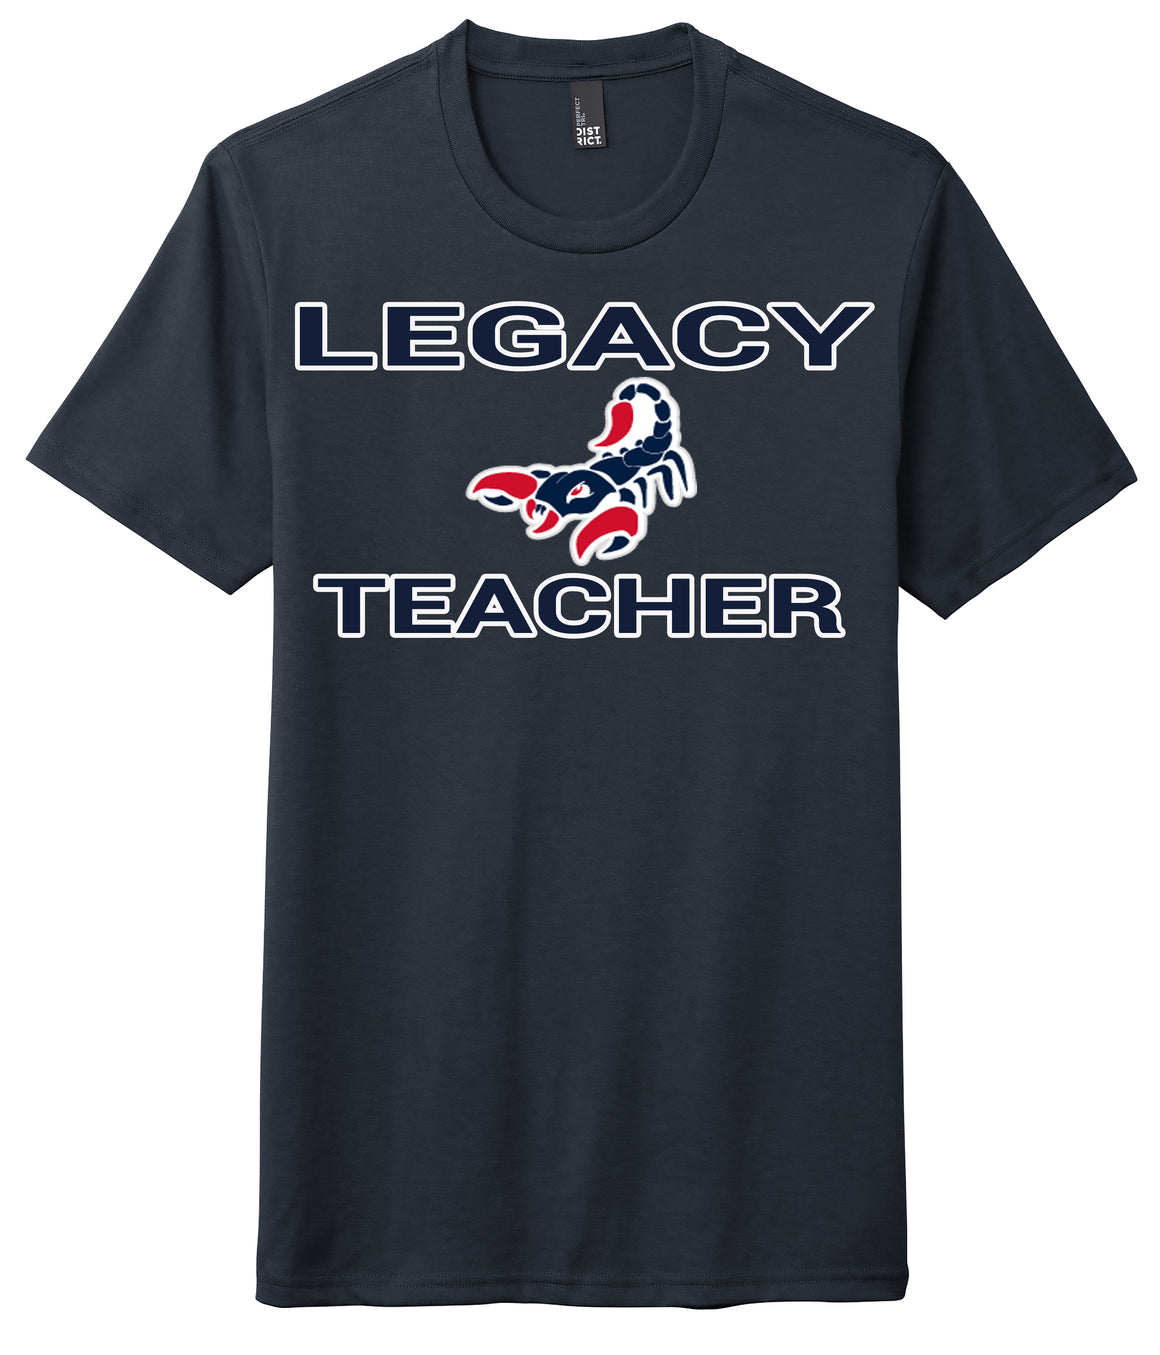 Legacy Traditional School North Valley - Customizable Shirt